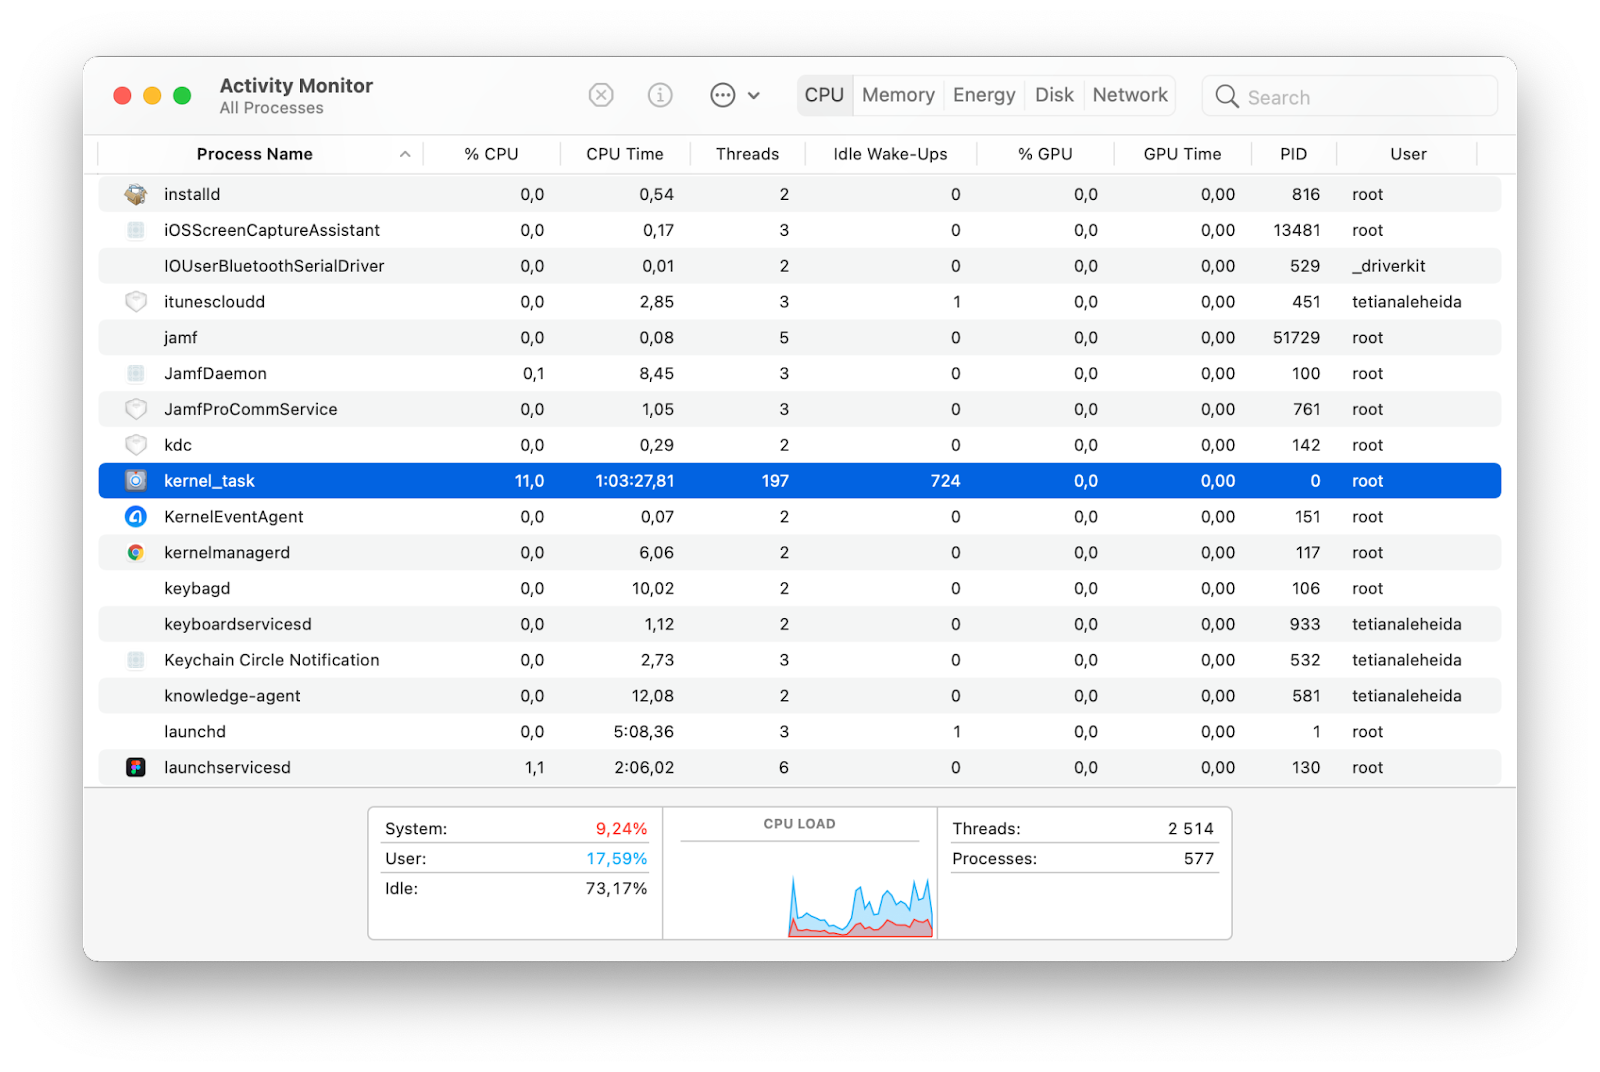 how much the kernel_task memory usage and CPU usage